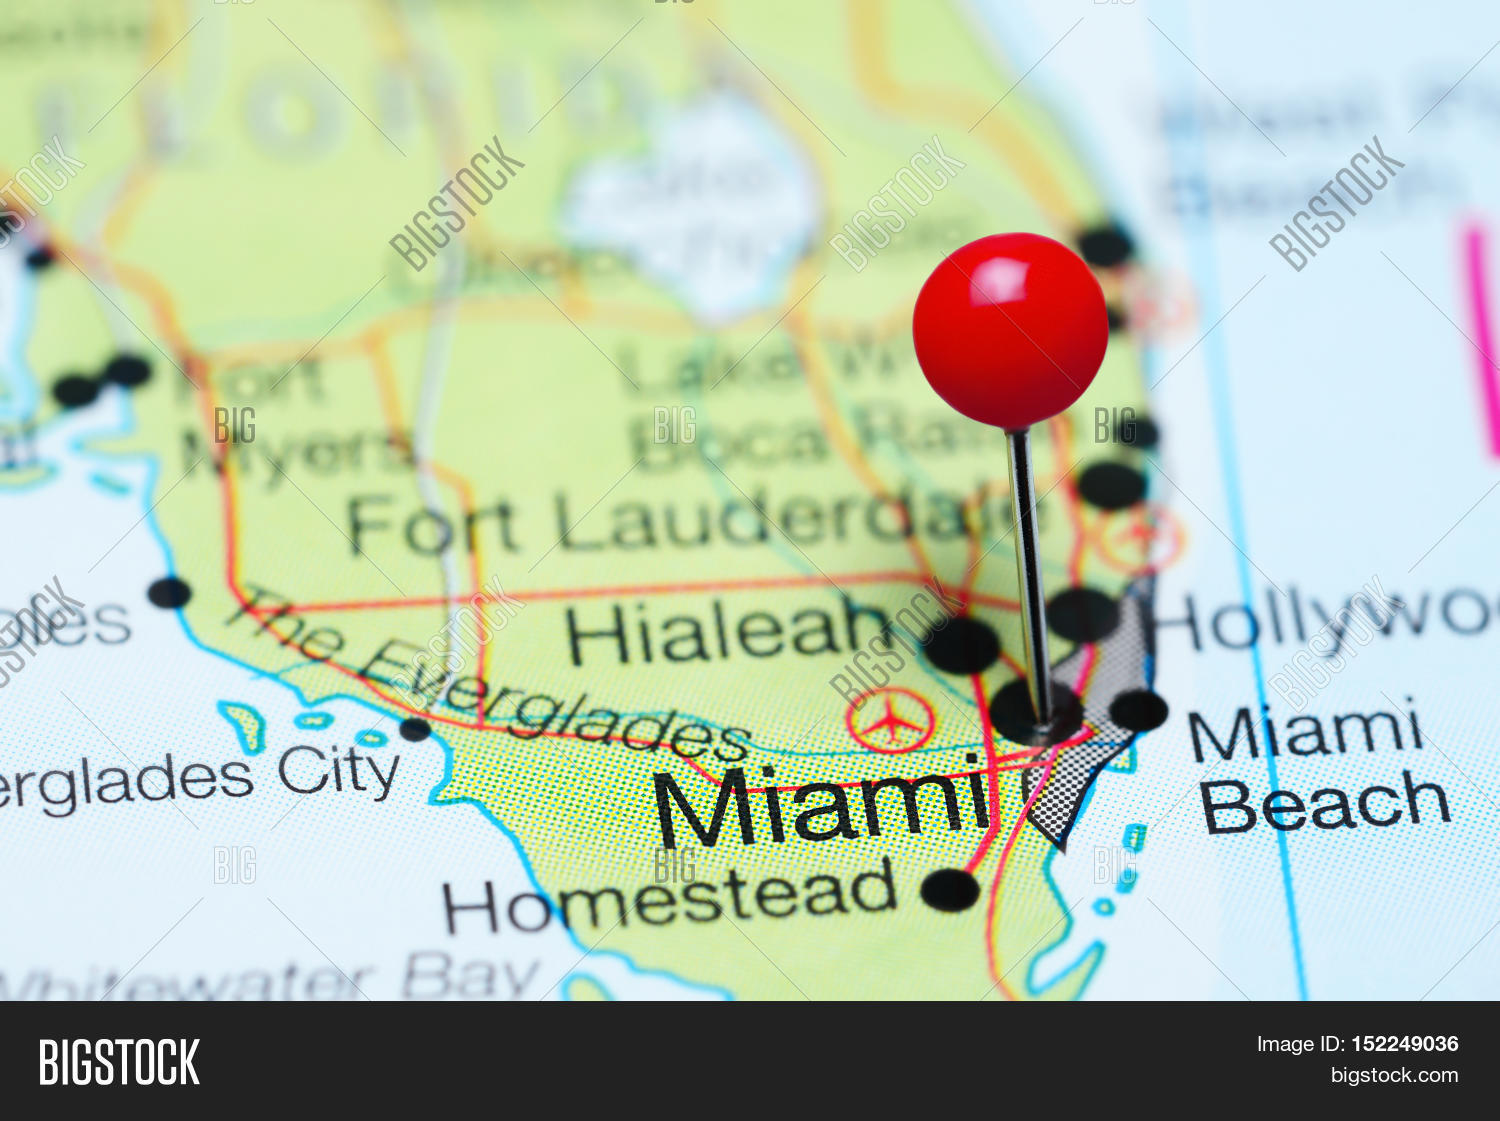 miami pinned on map image & photo (free trial) | bigstock